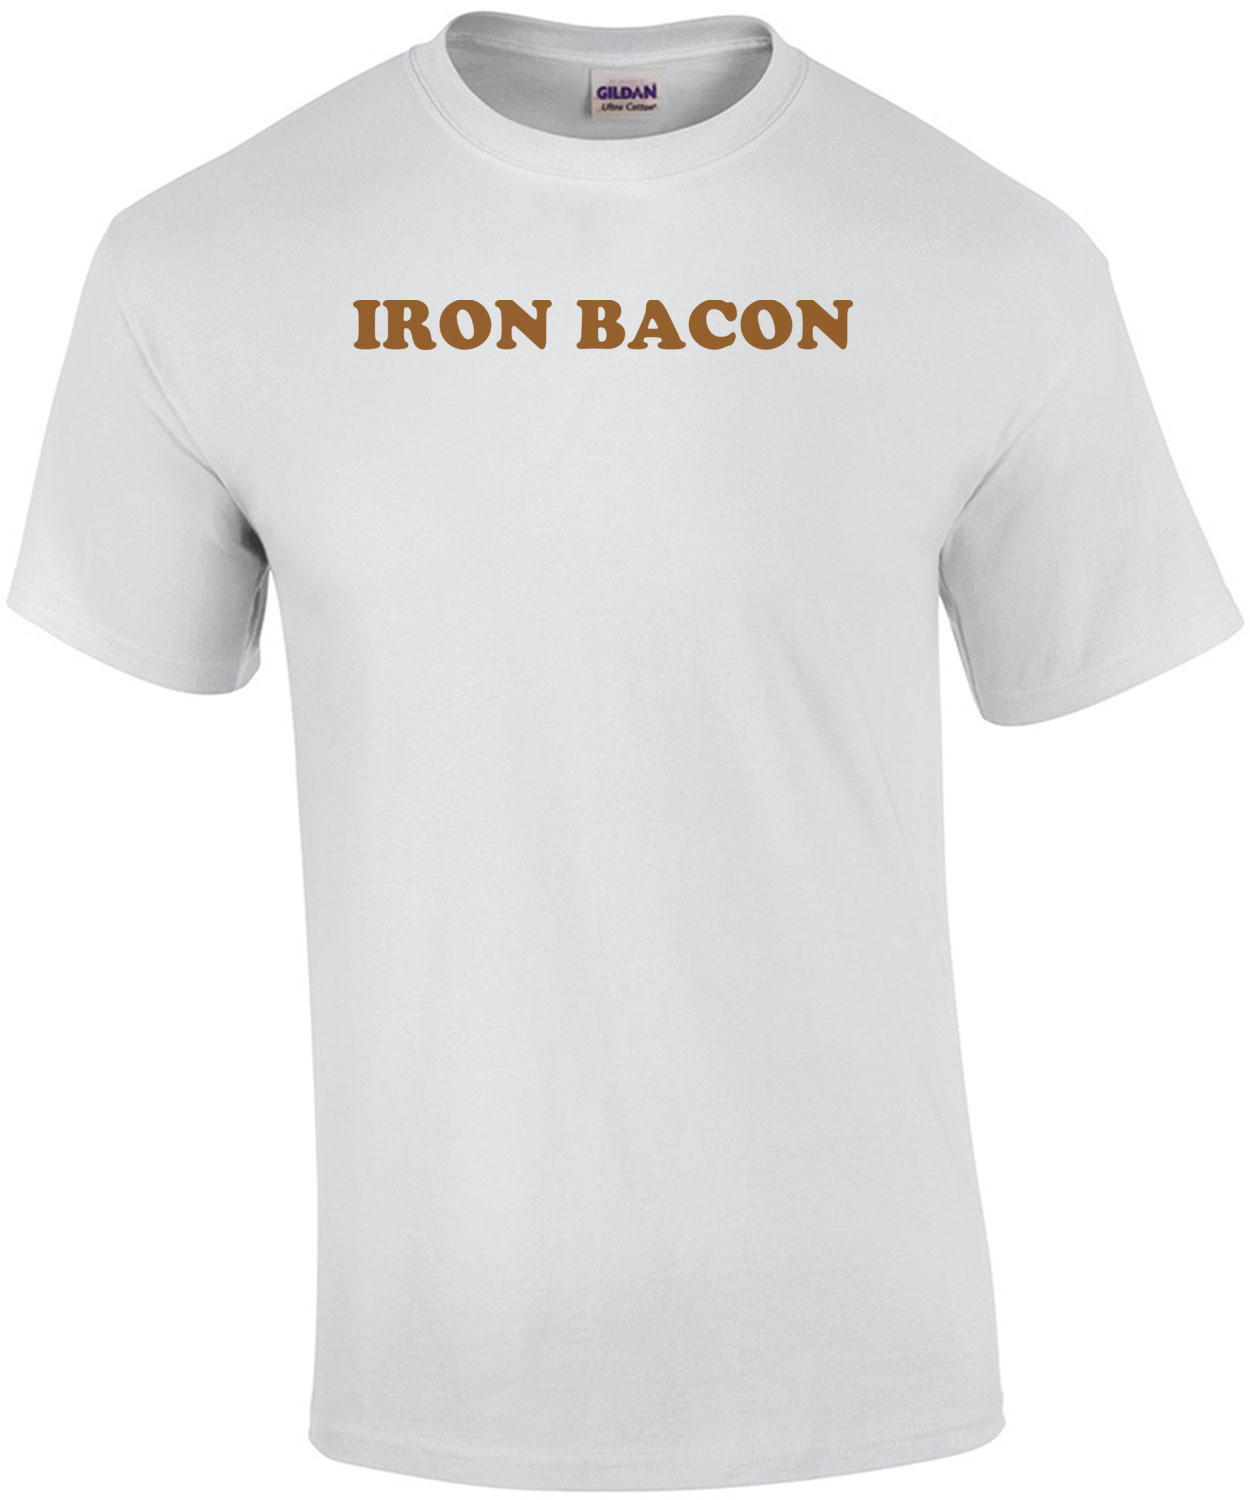 IRON BACON Shirt